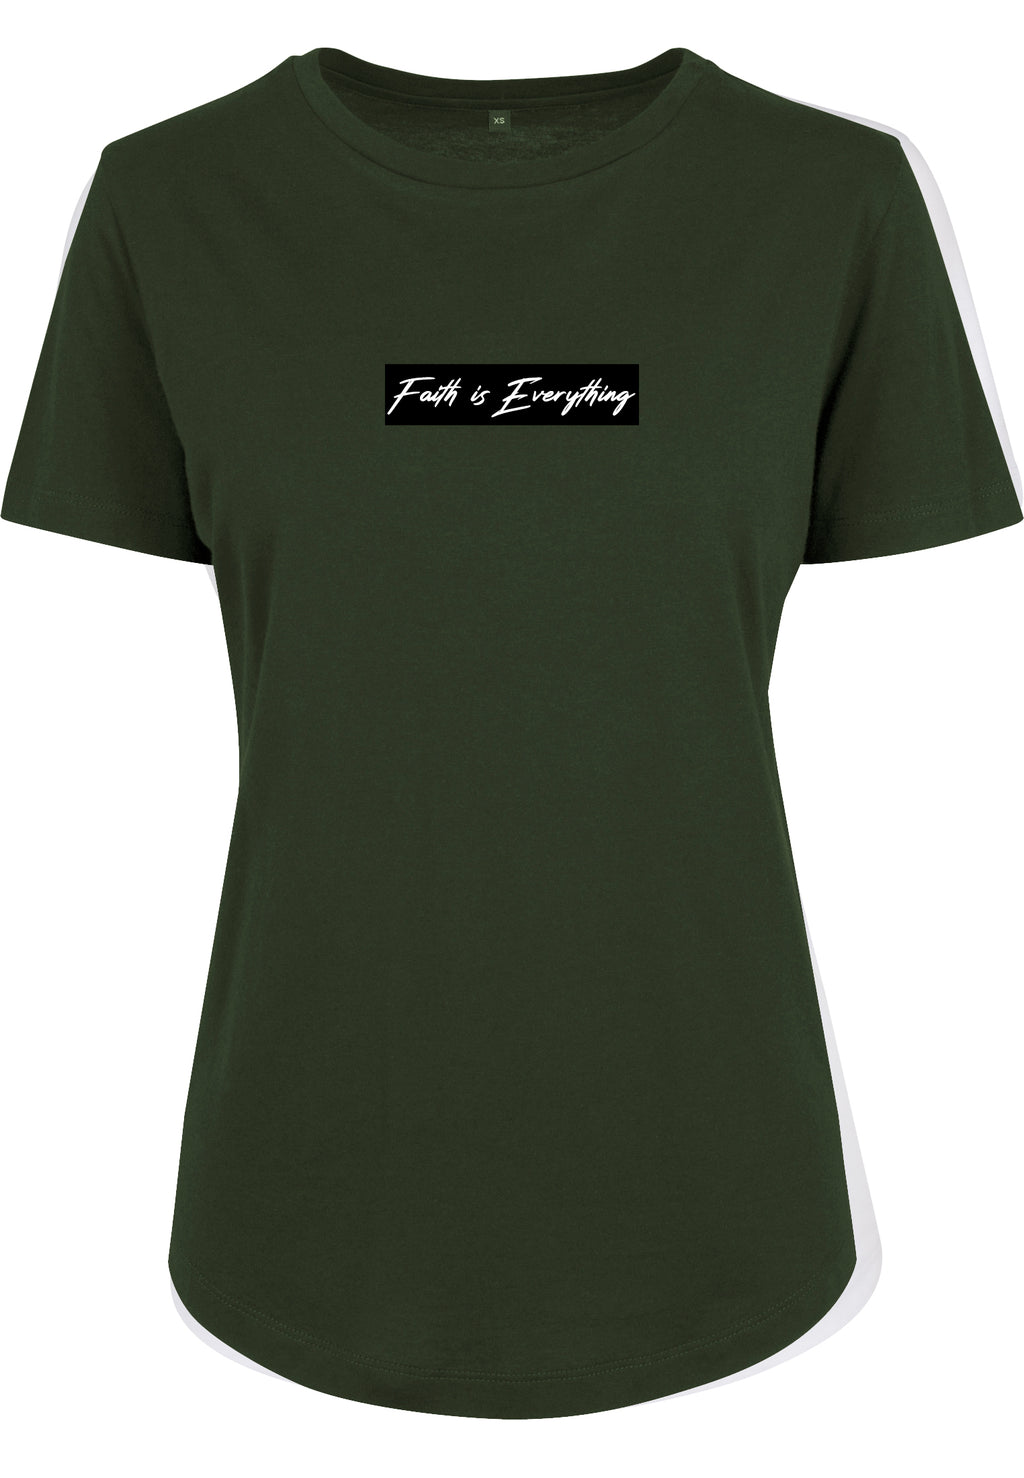 Women's FAITH IS EVERYTHING BLACK FITTED T-SHIRT (Olive)